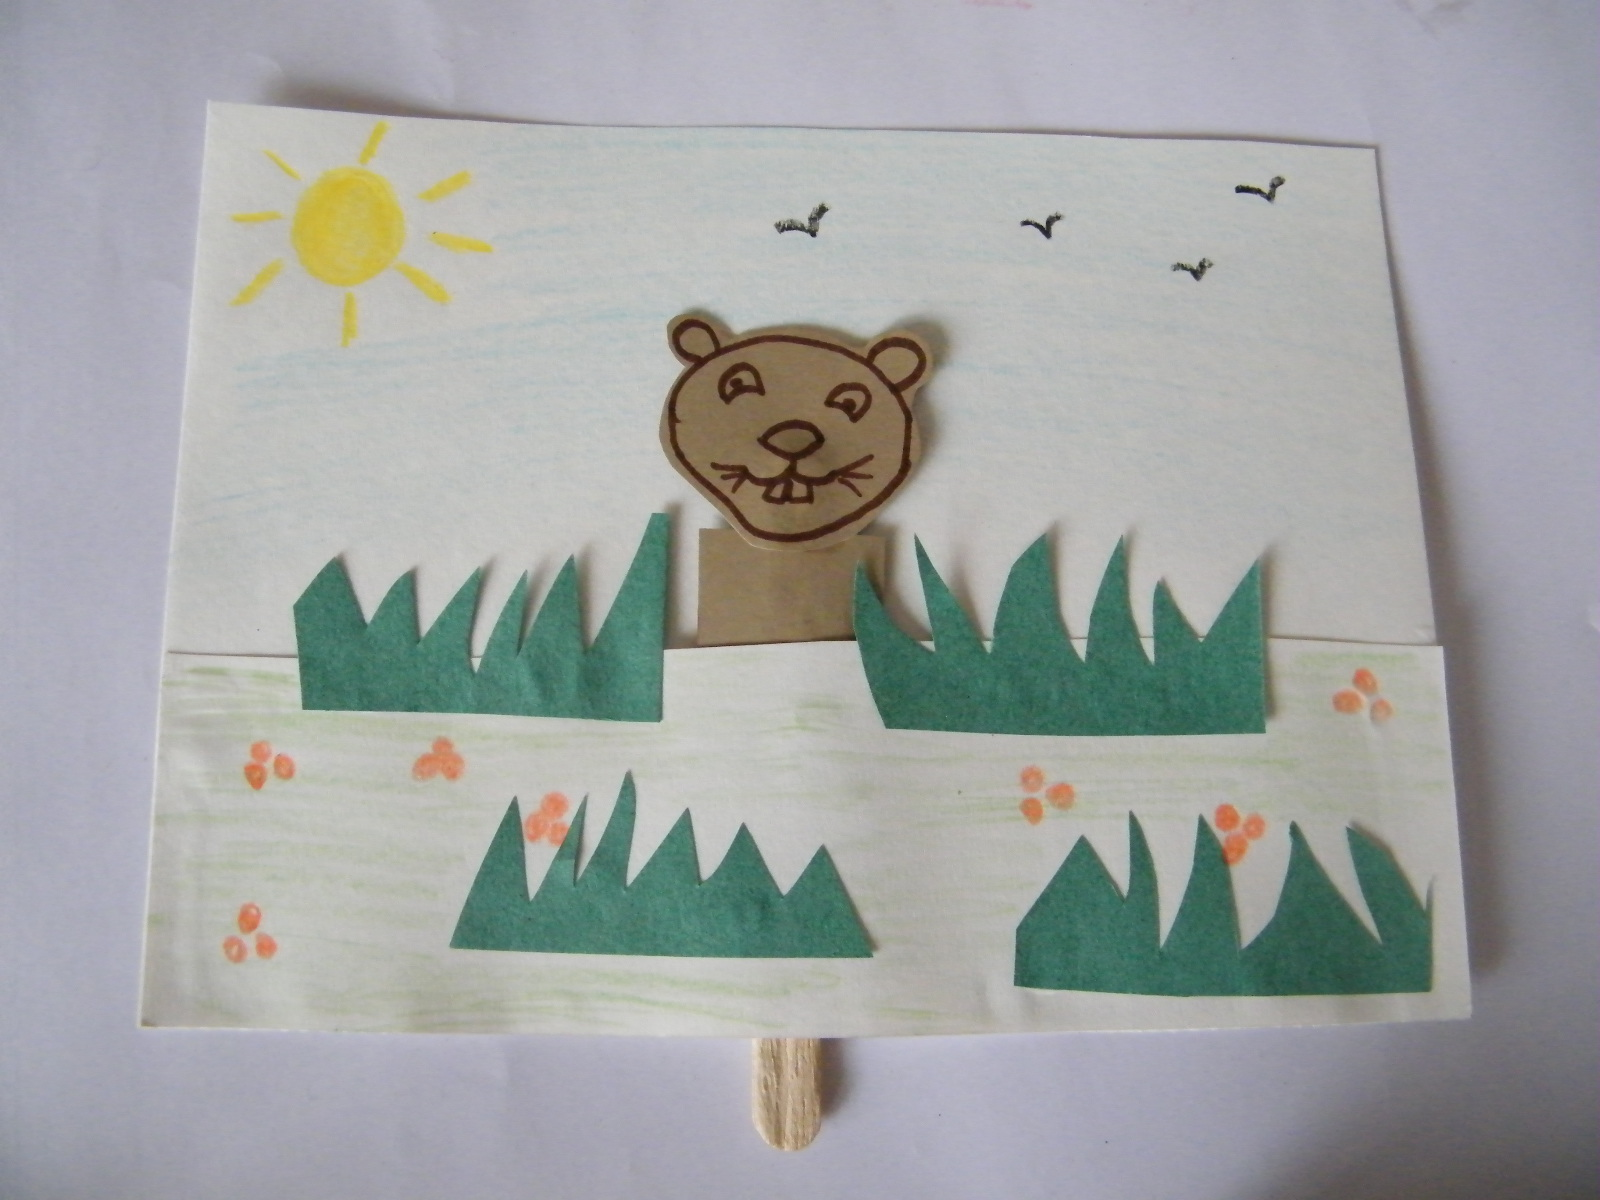 Peeping Groundhogs Craft Activity For Groundhog Day Kids Crafts